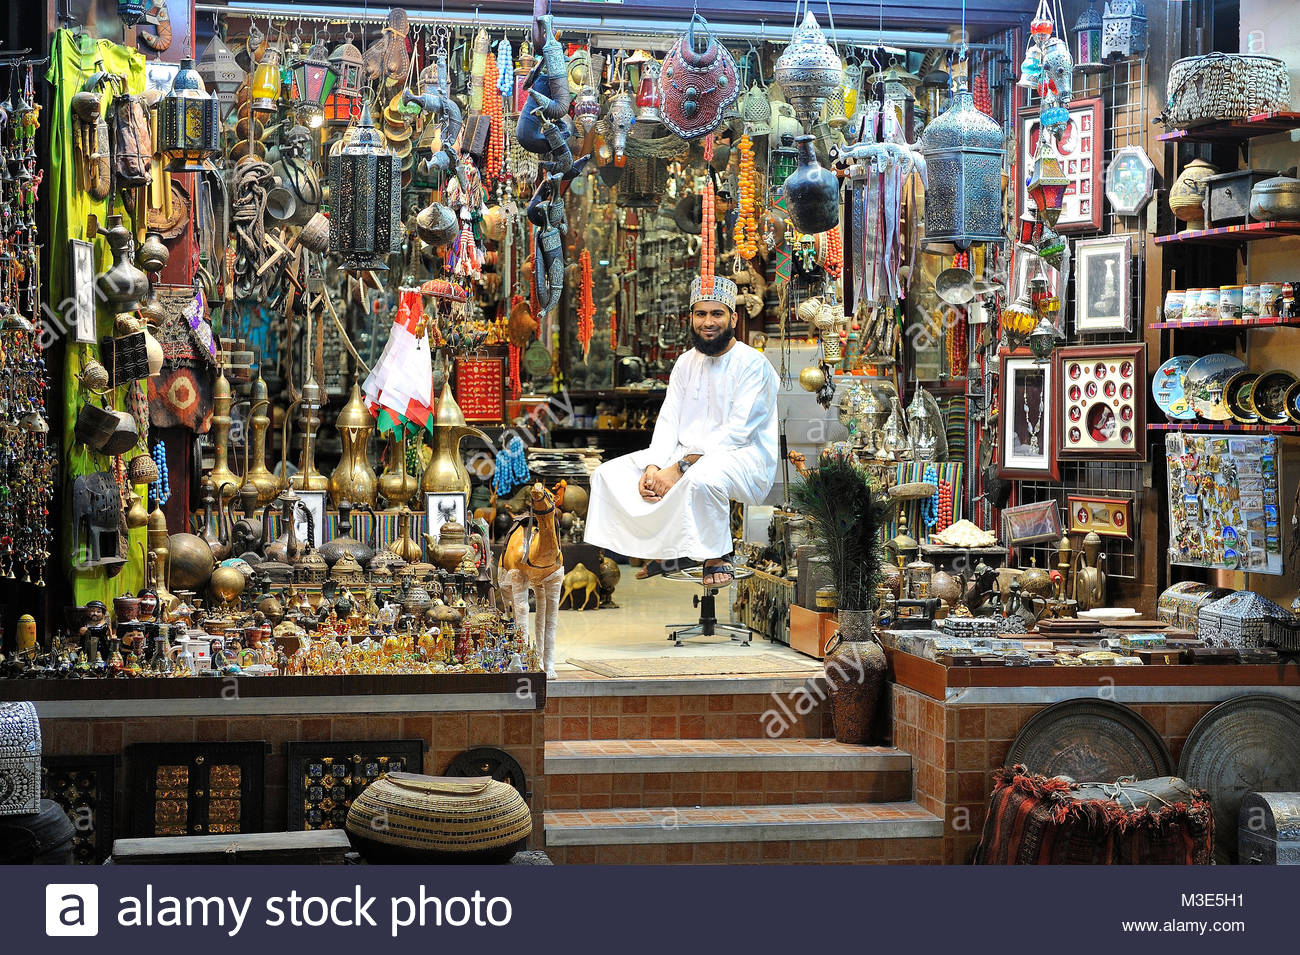 Old Trader Stock Photos & Old Trader Stock Images - Alamy